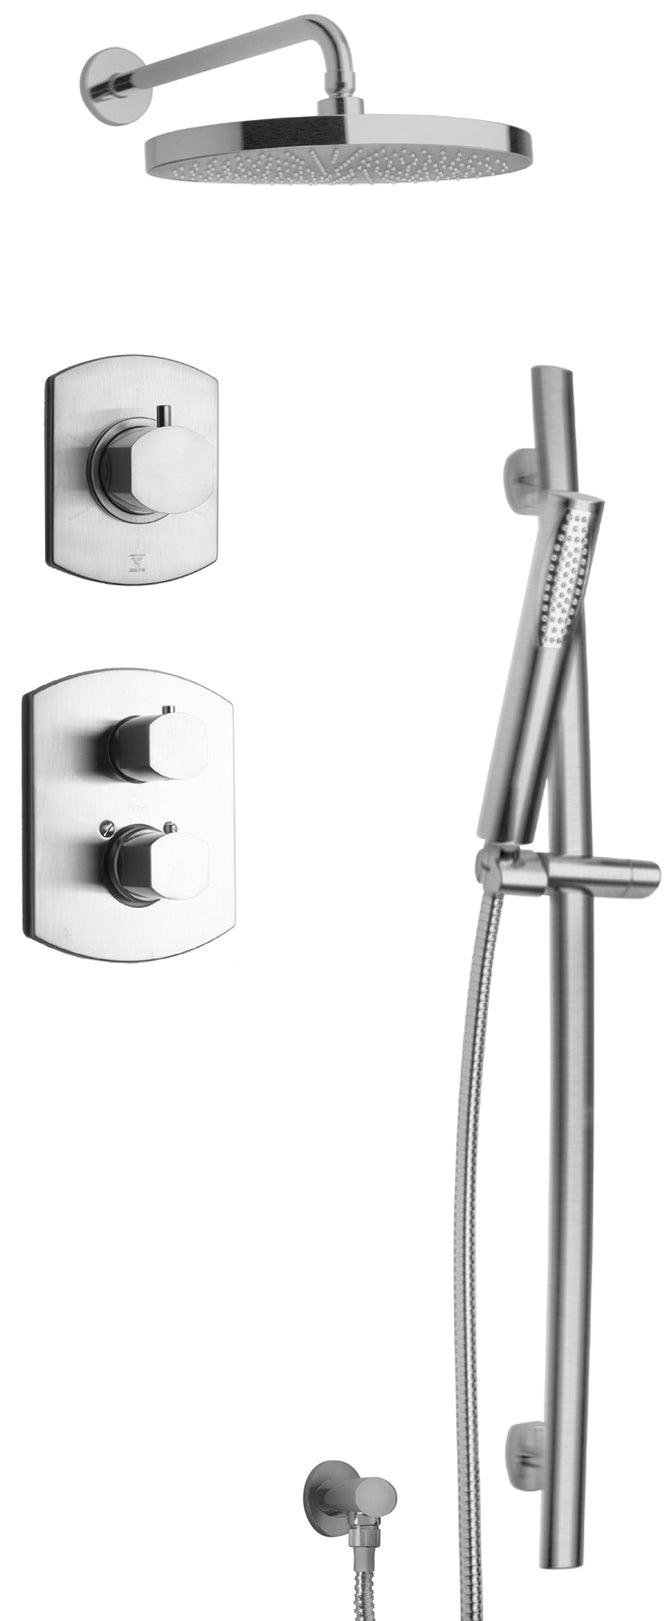 Novello Thermostatic Shower With 3 4 Ceramic Disc Volume Control 3 Way Diverter And Slide Bar In Chrome